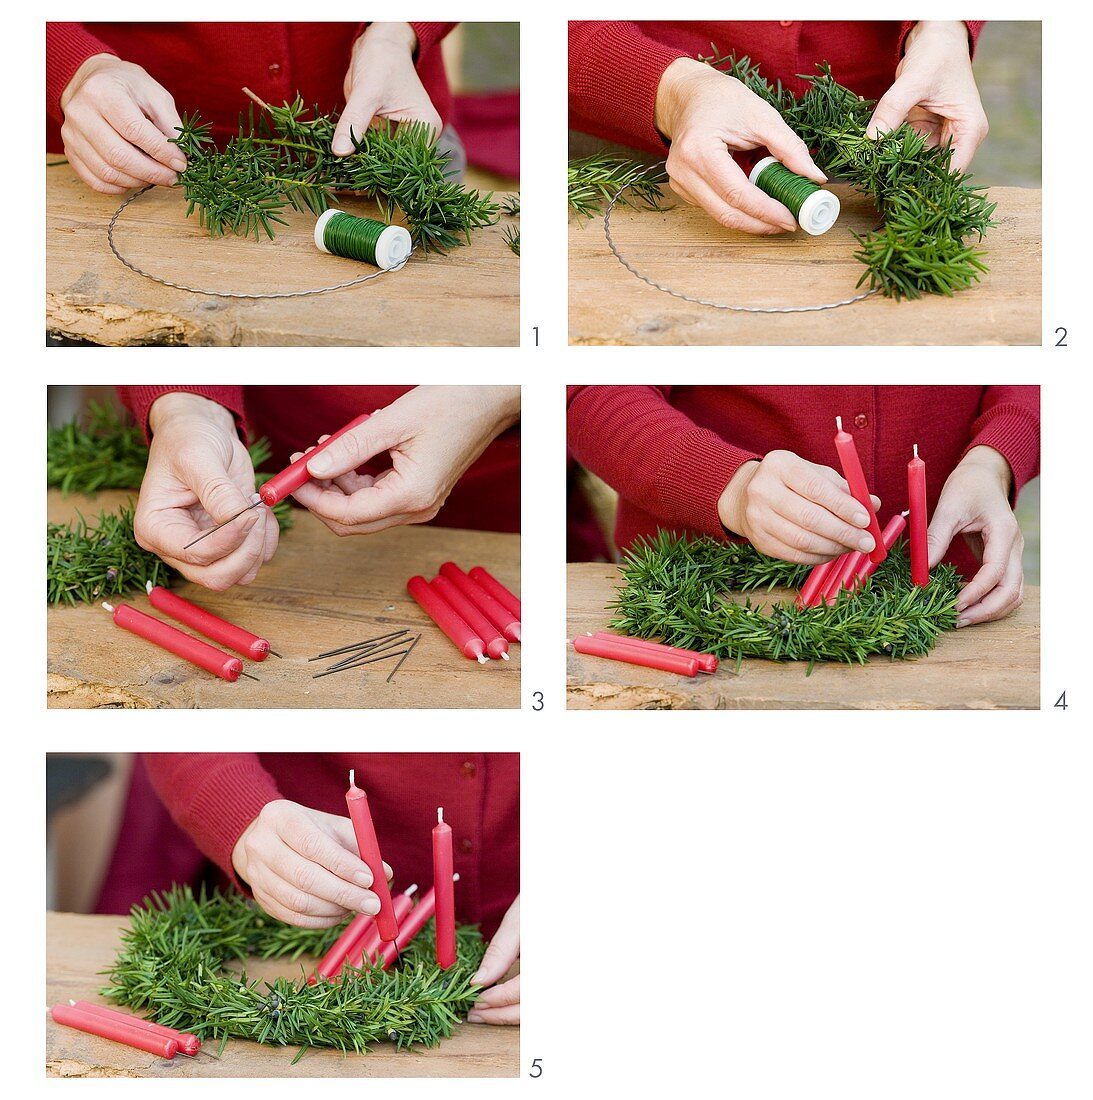 Making a Christmas wreath of yew with red candles